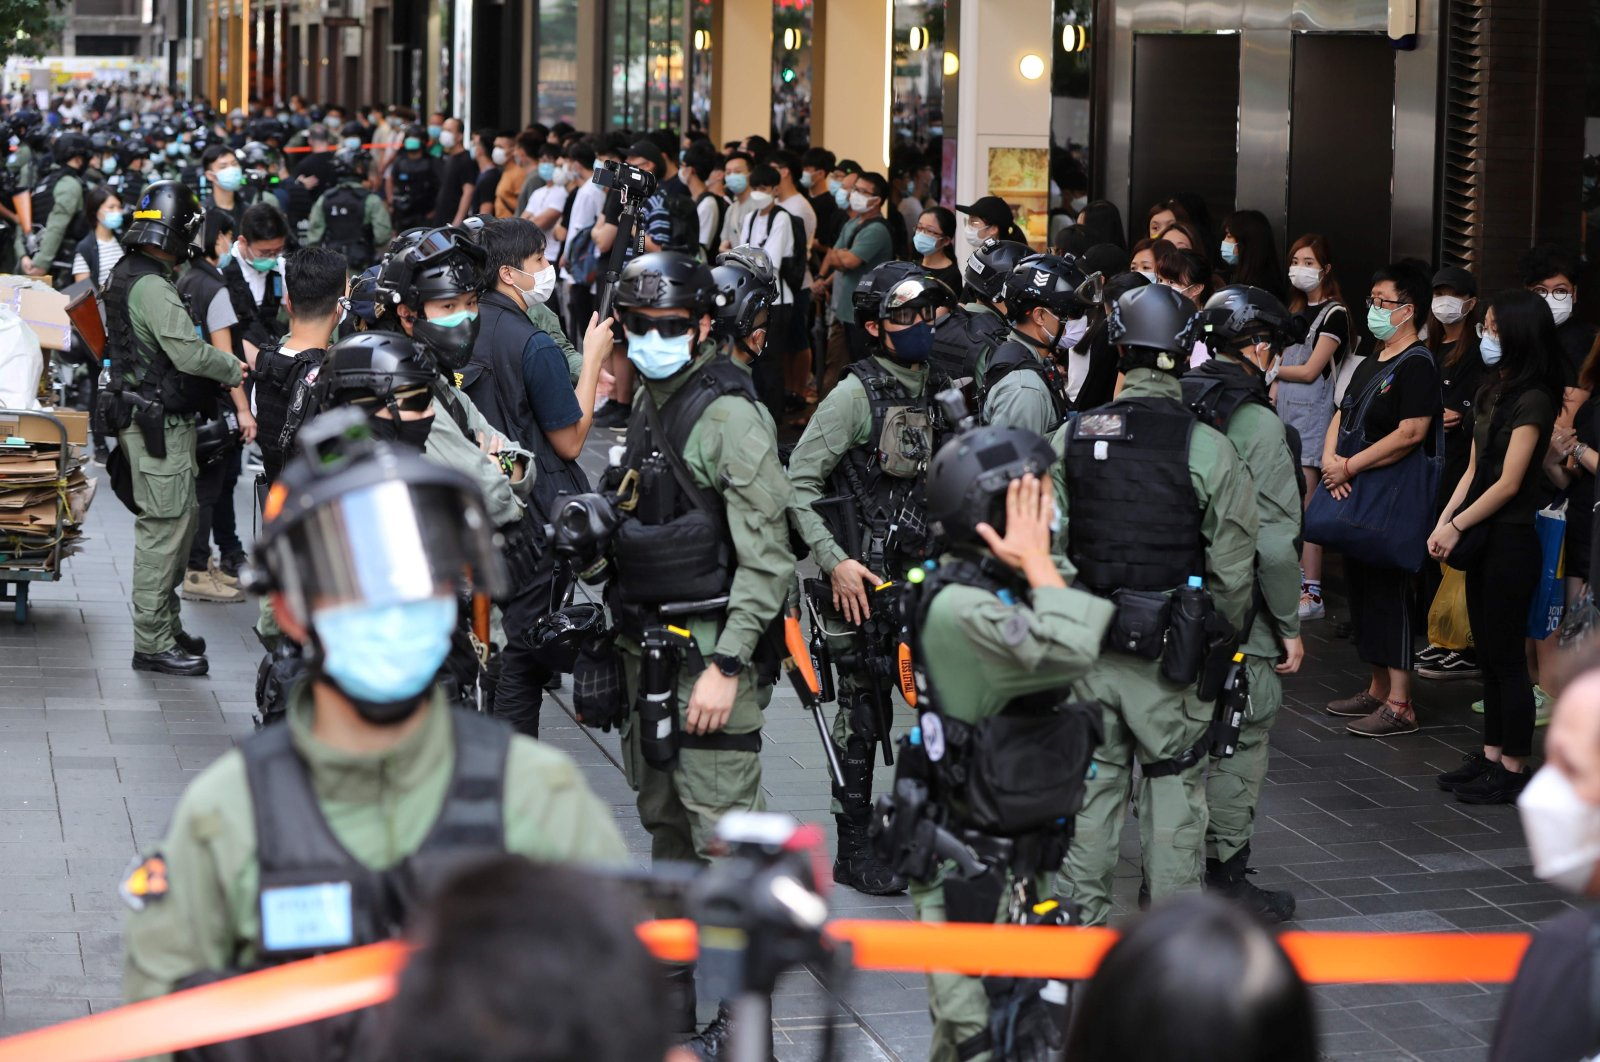 Police officers prepare to search people inside a cordon area during China's National Day, Hong Kong, Oct. 1, 2020. (AFP Photo)